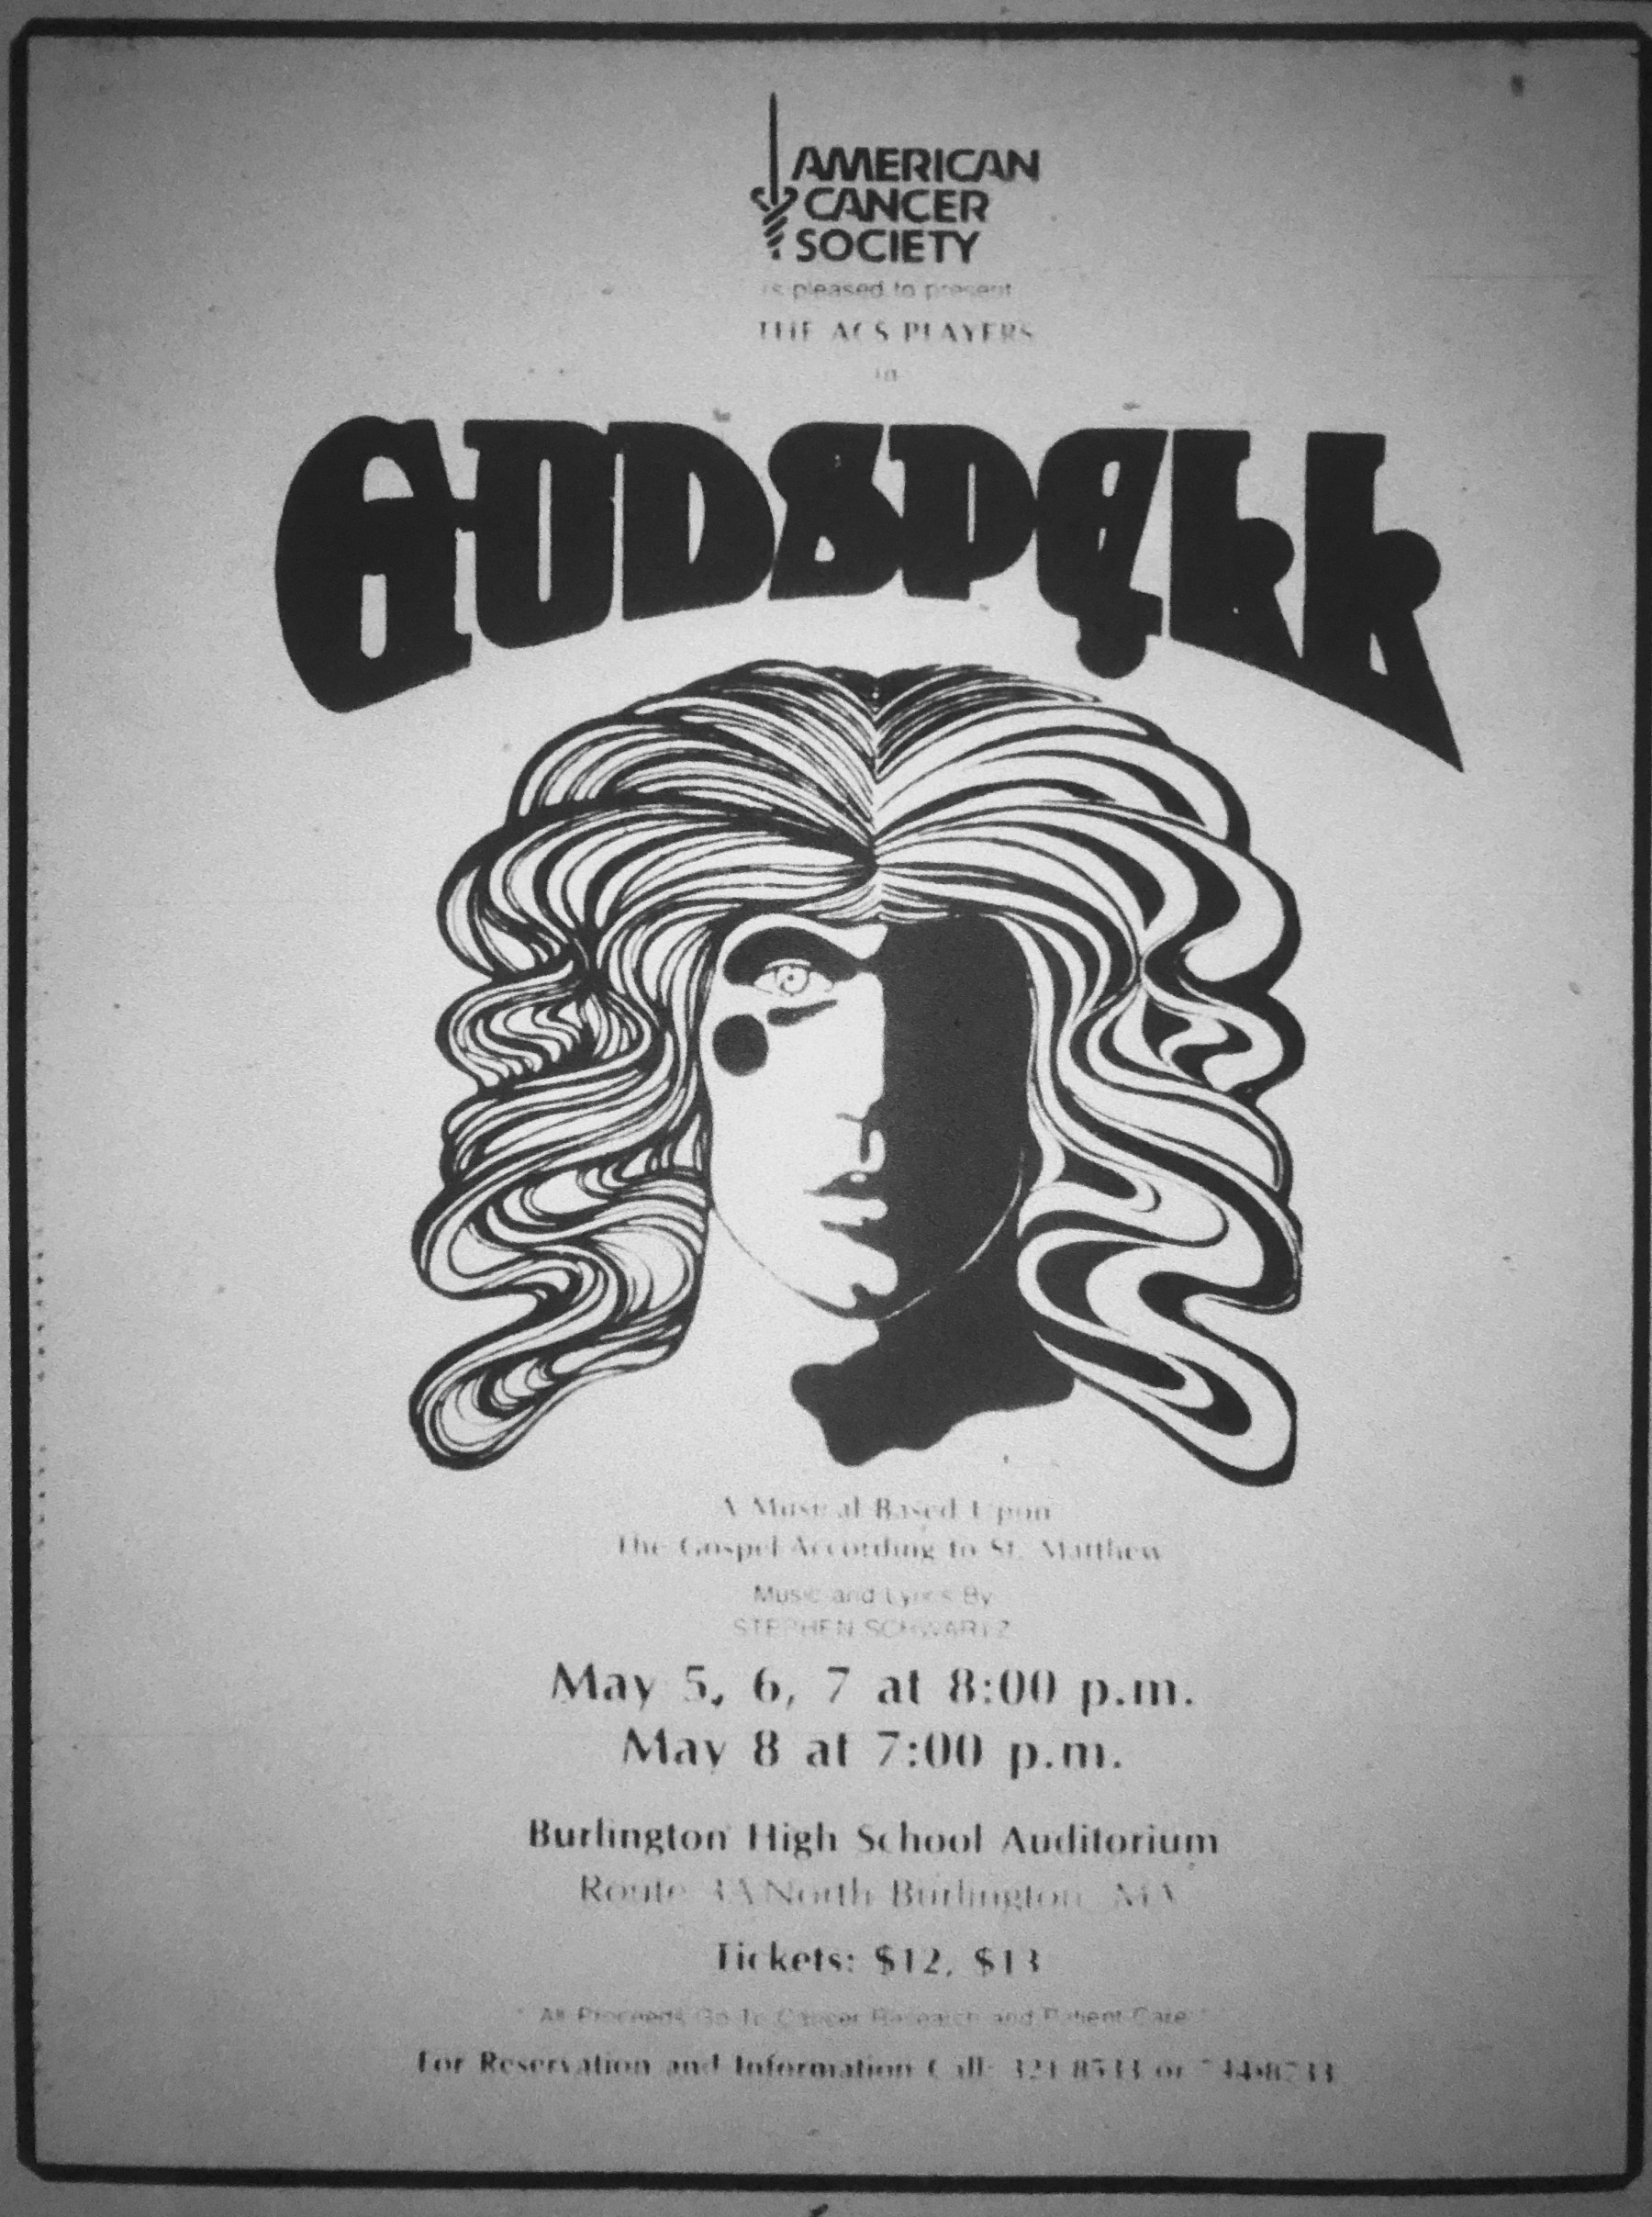 Godspell, playing at Burlington High School